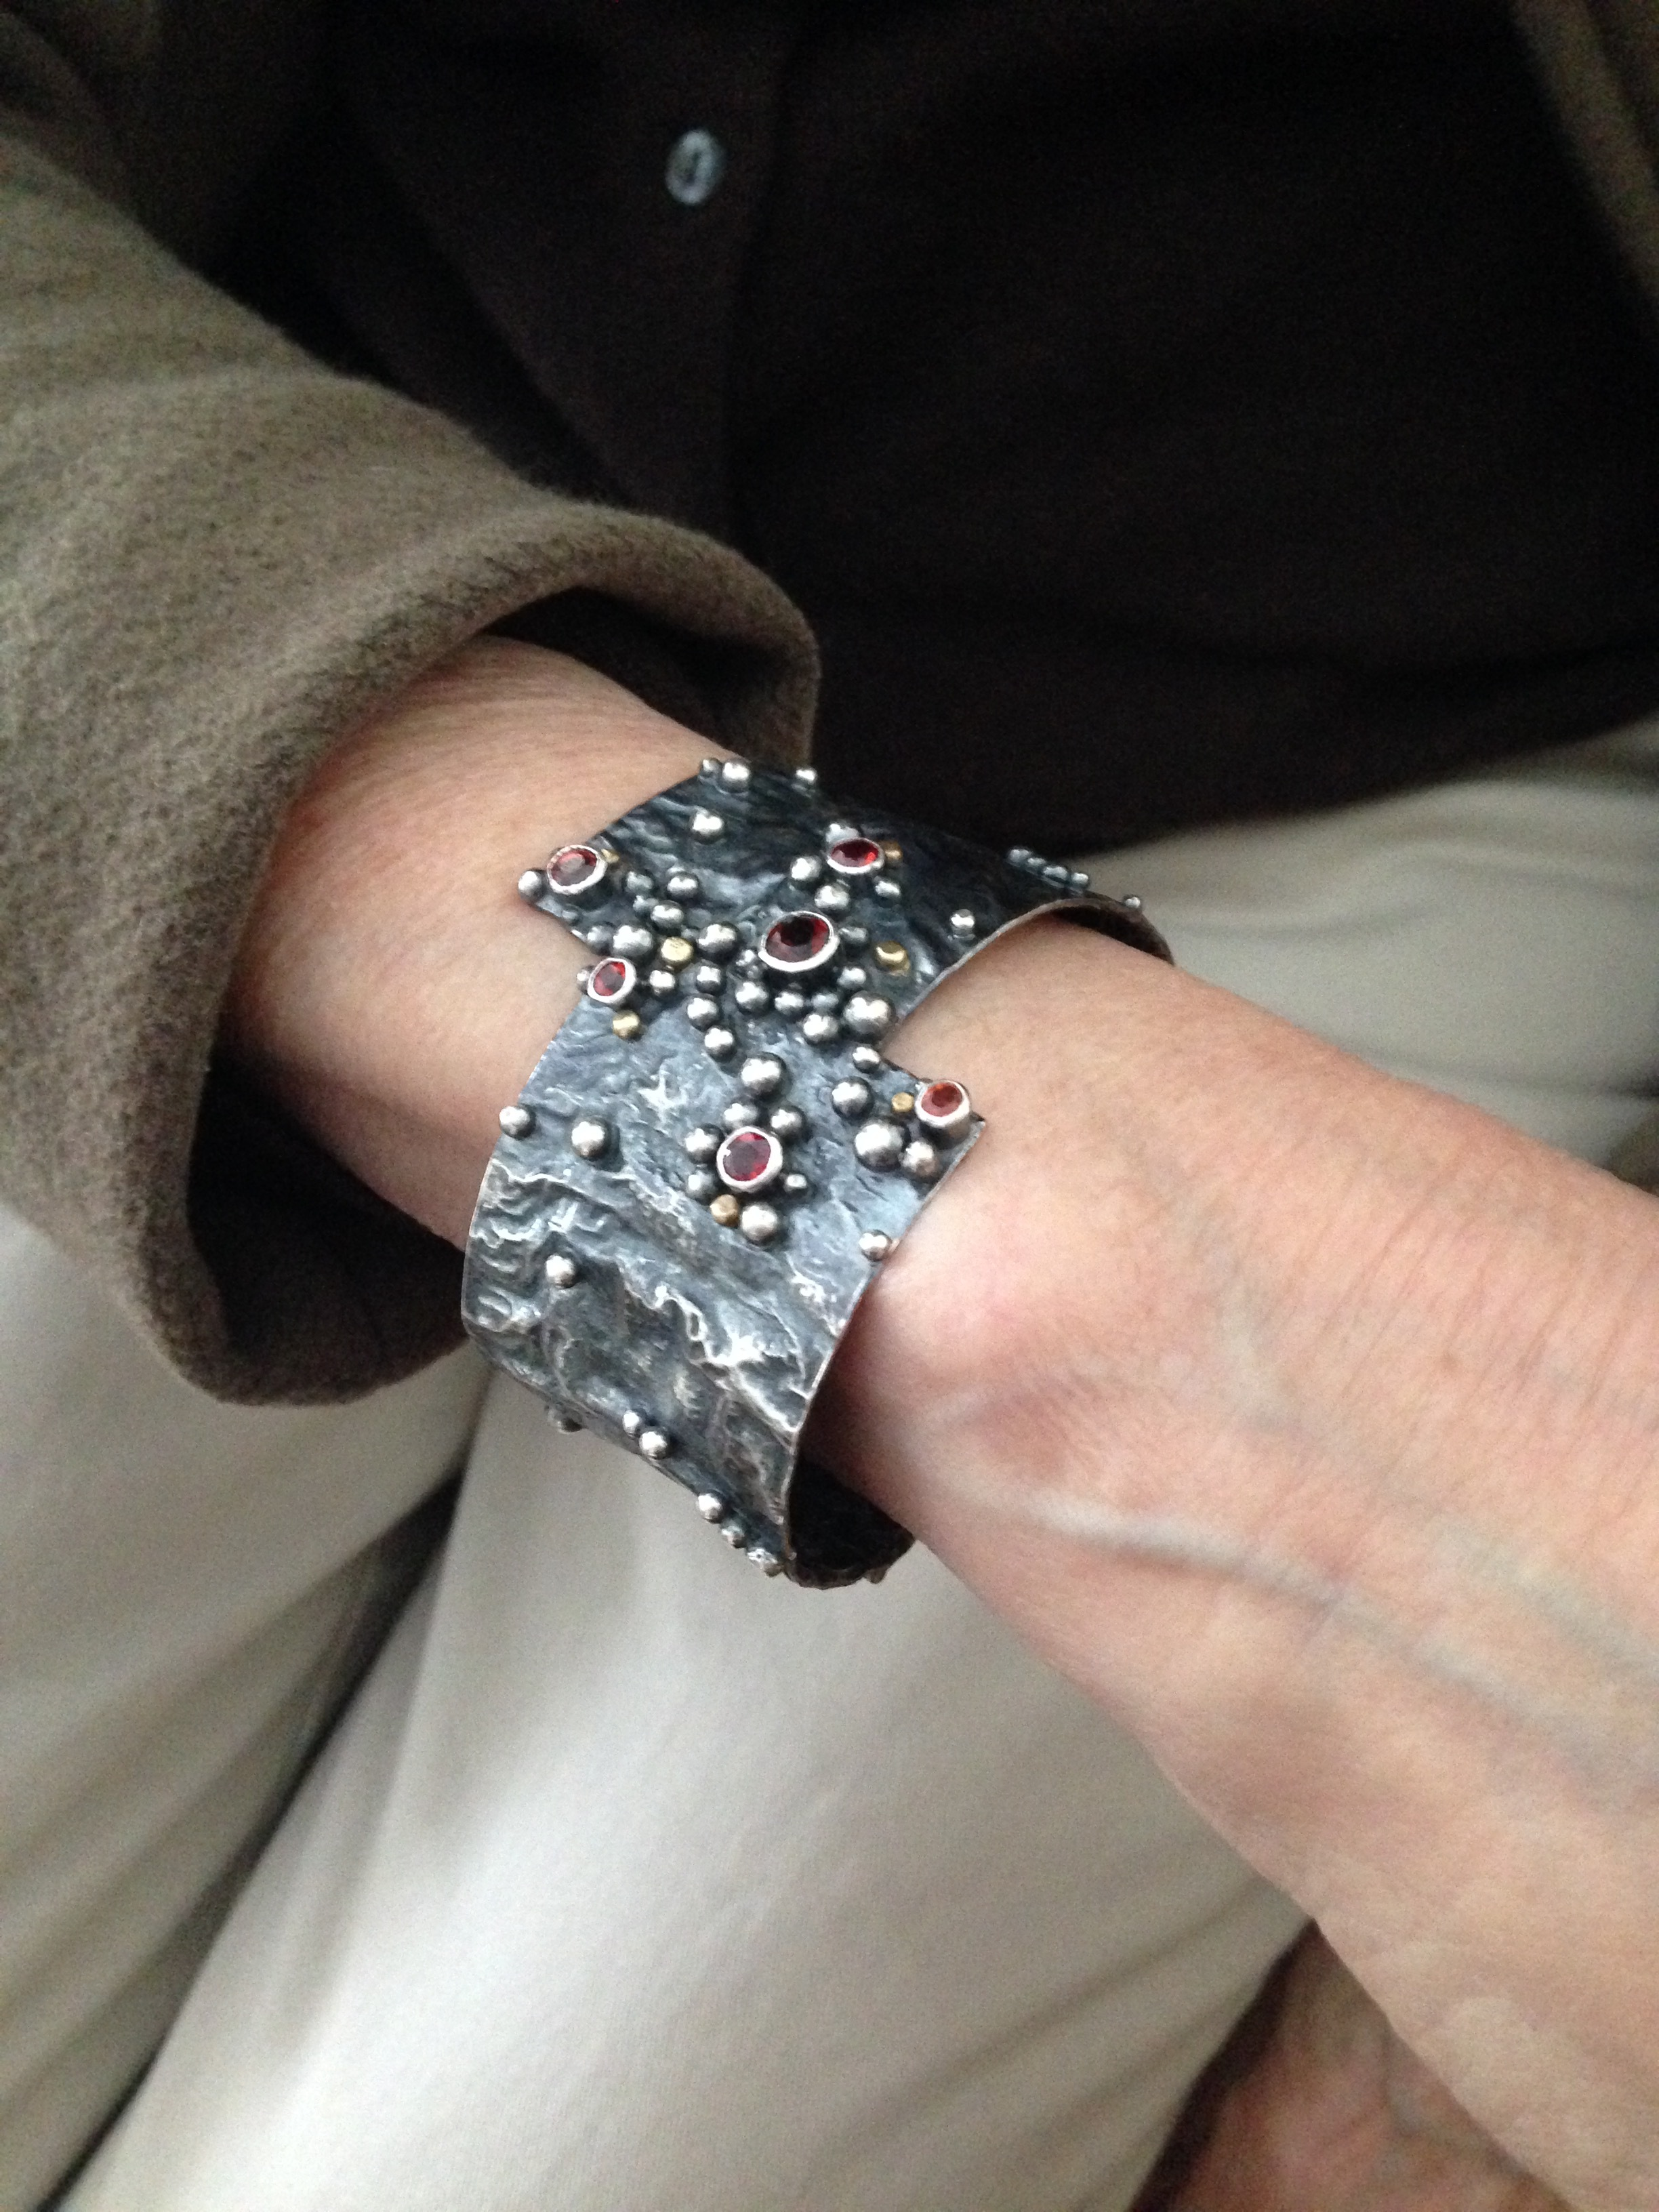 The beautiful wrist of Gladys who fell in love with this cuff bracelet and celebrated her retirement with it.